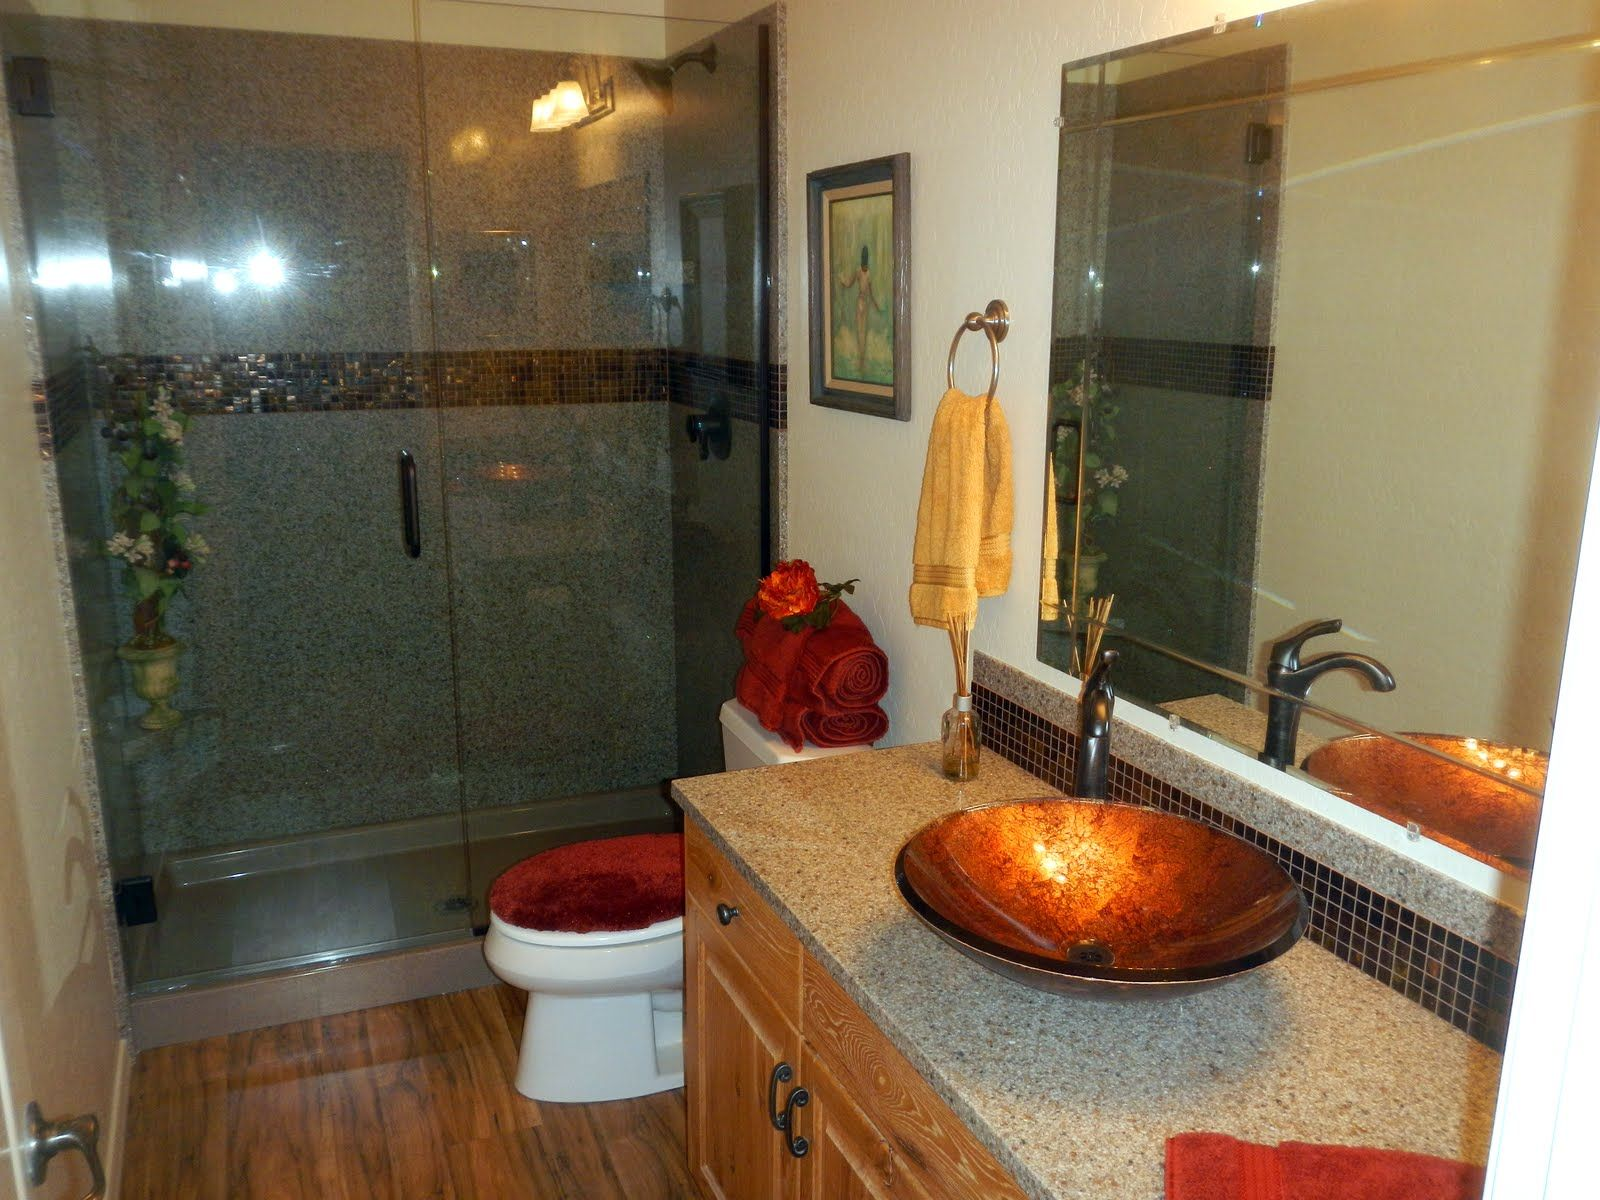 Granite Countertops Des Moines Bathroom From Granite Transformations Bathroom Decor